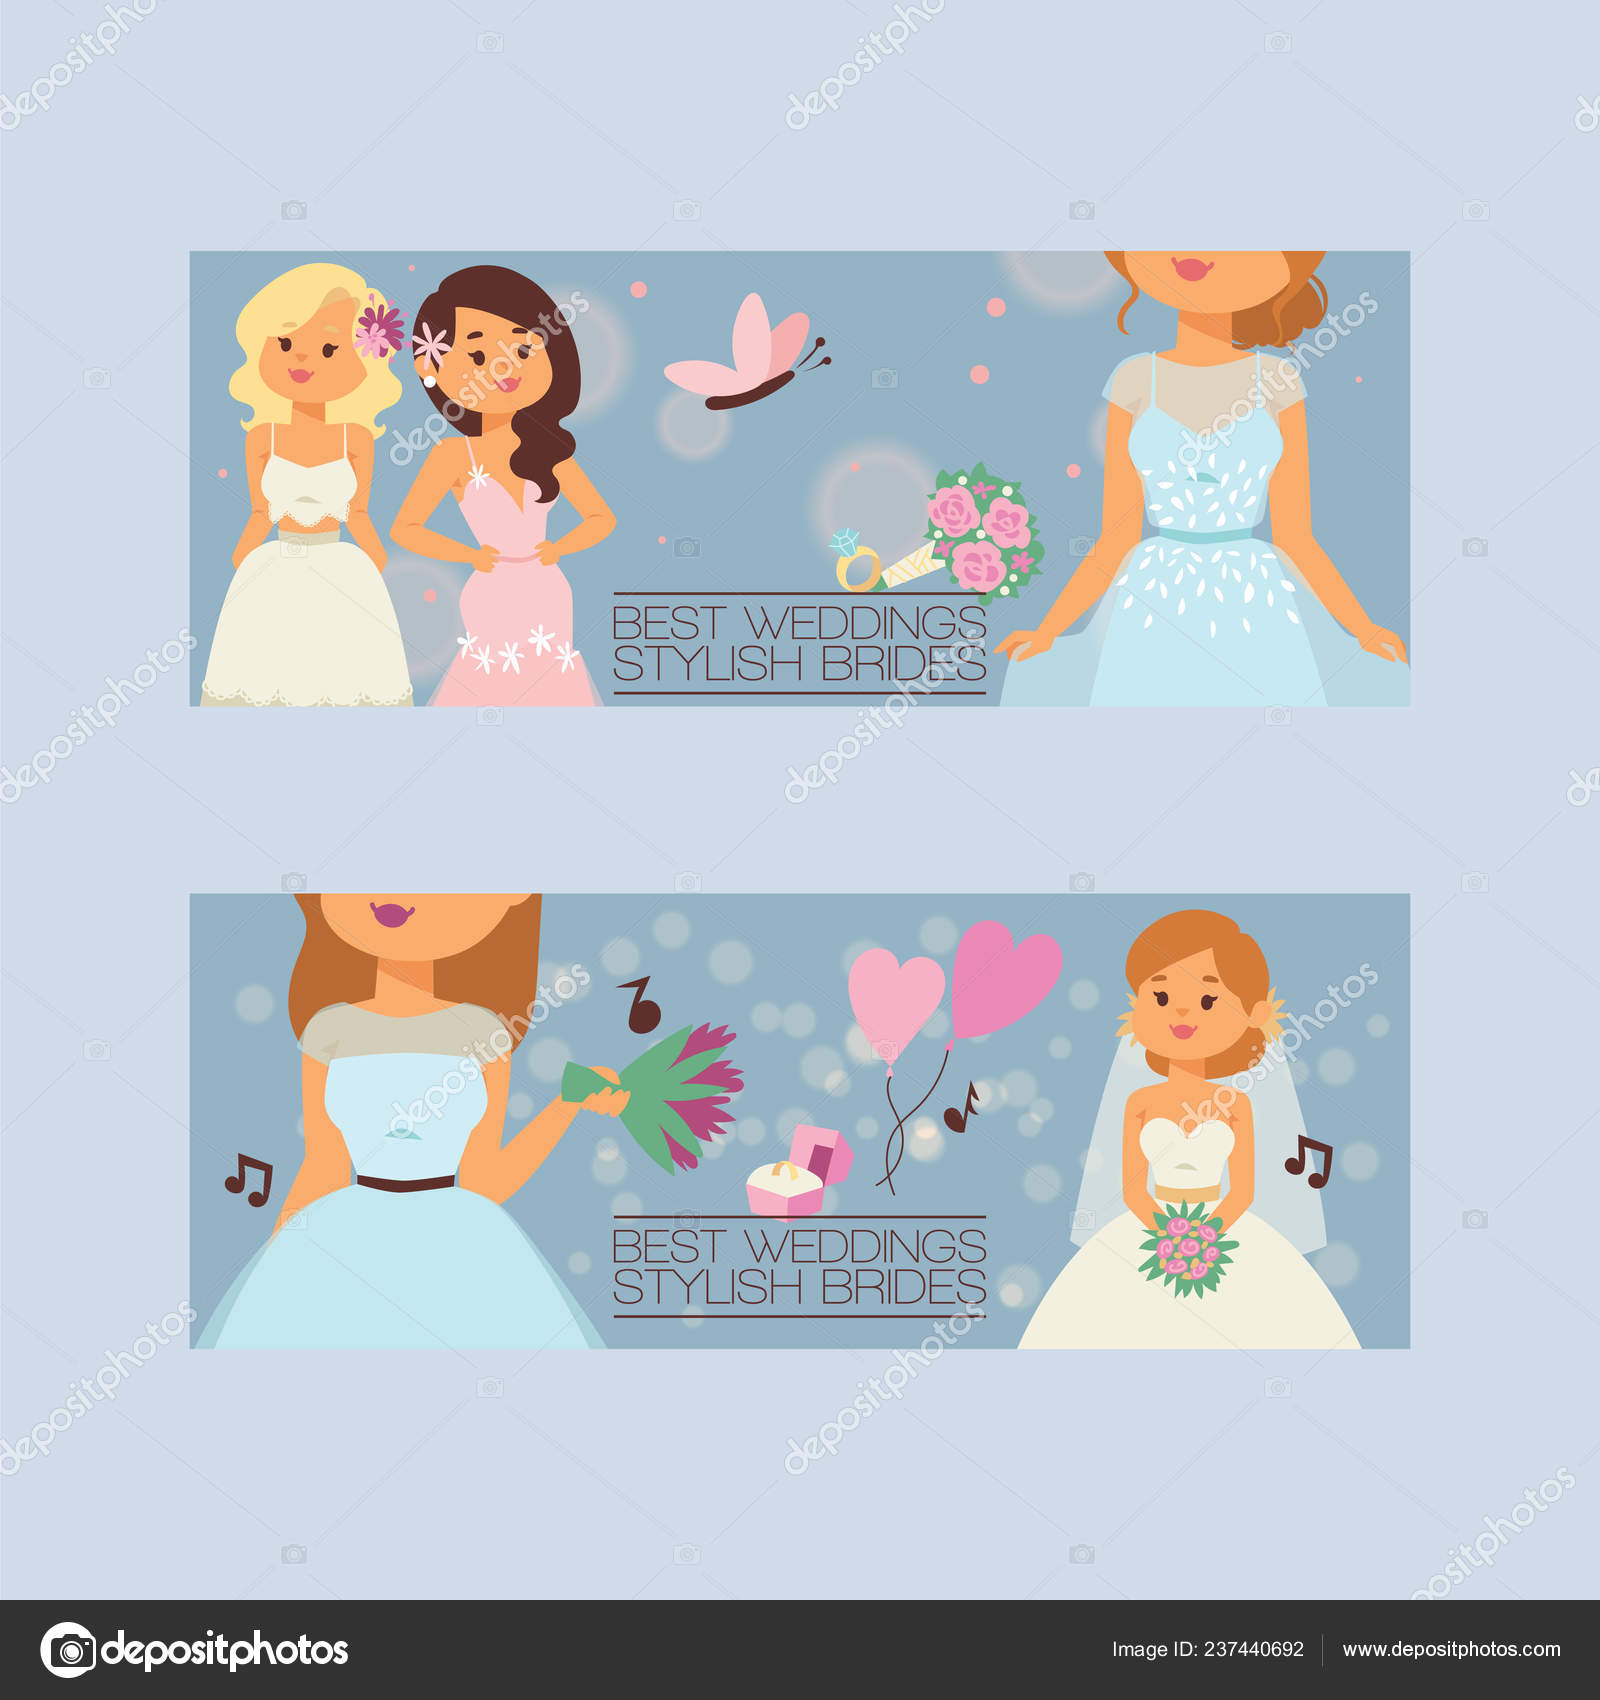 Bride Vector Bridesmaid Woman Character In Wedding Dresses Wearing White Dressing Accessories And Bridal Celebration Illustration Backdrop Set Of Marriageable Girl In Marriage Dress Background Banner Stock Vector C Adekvat 237440692